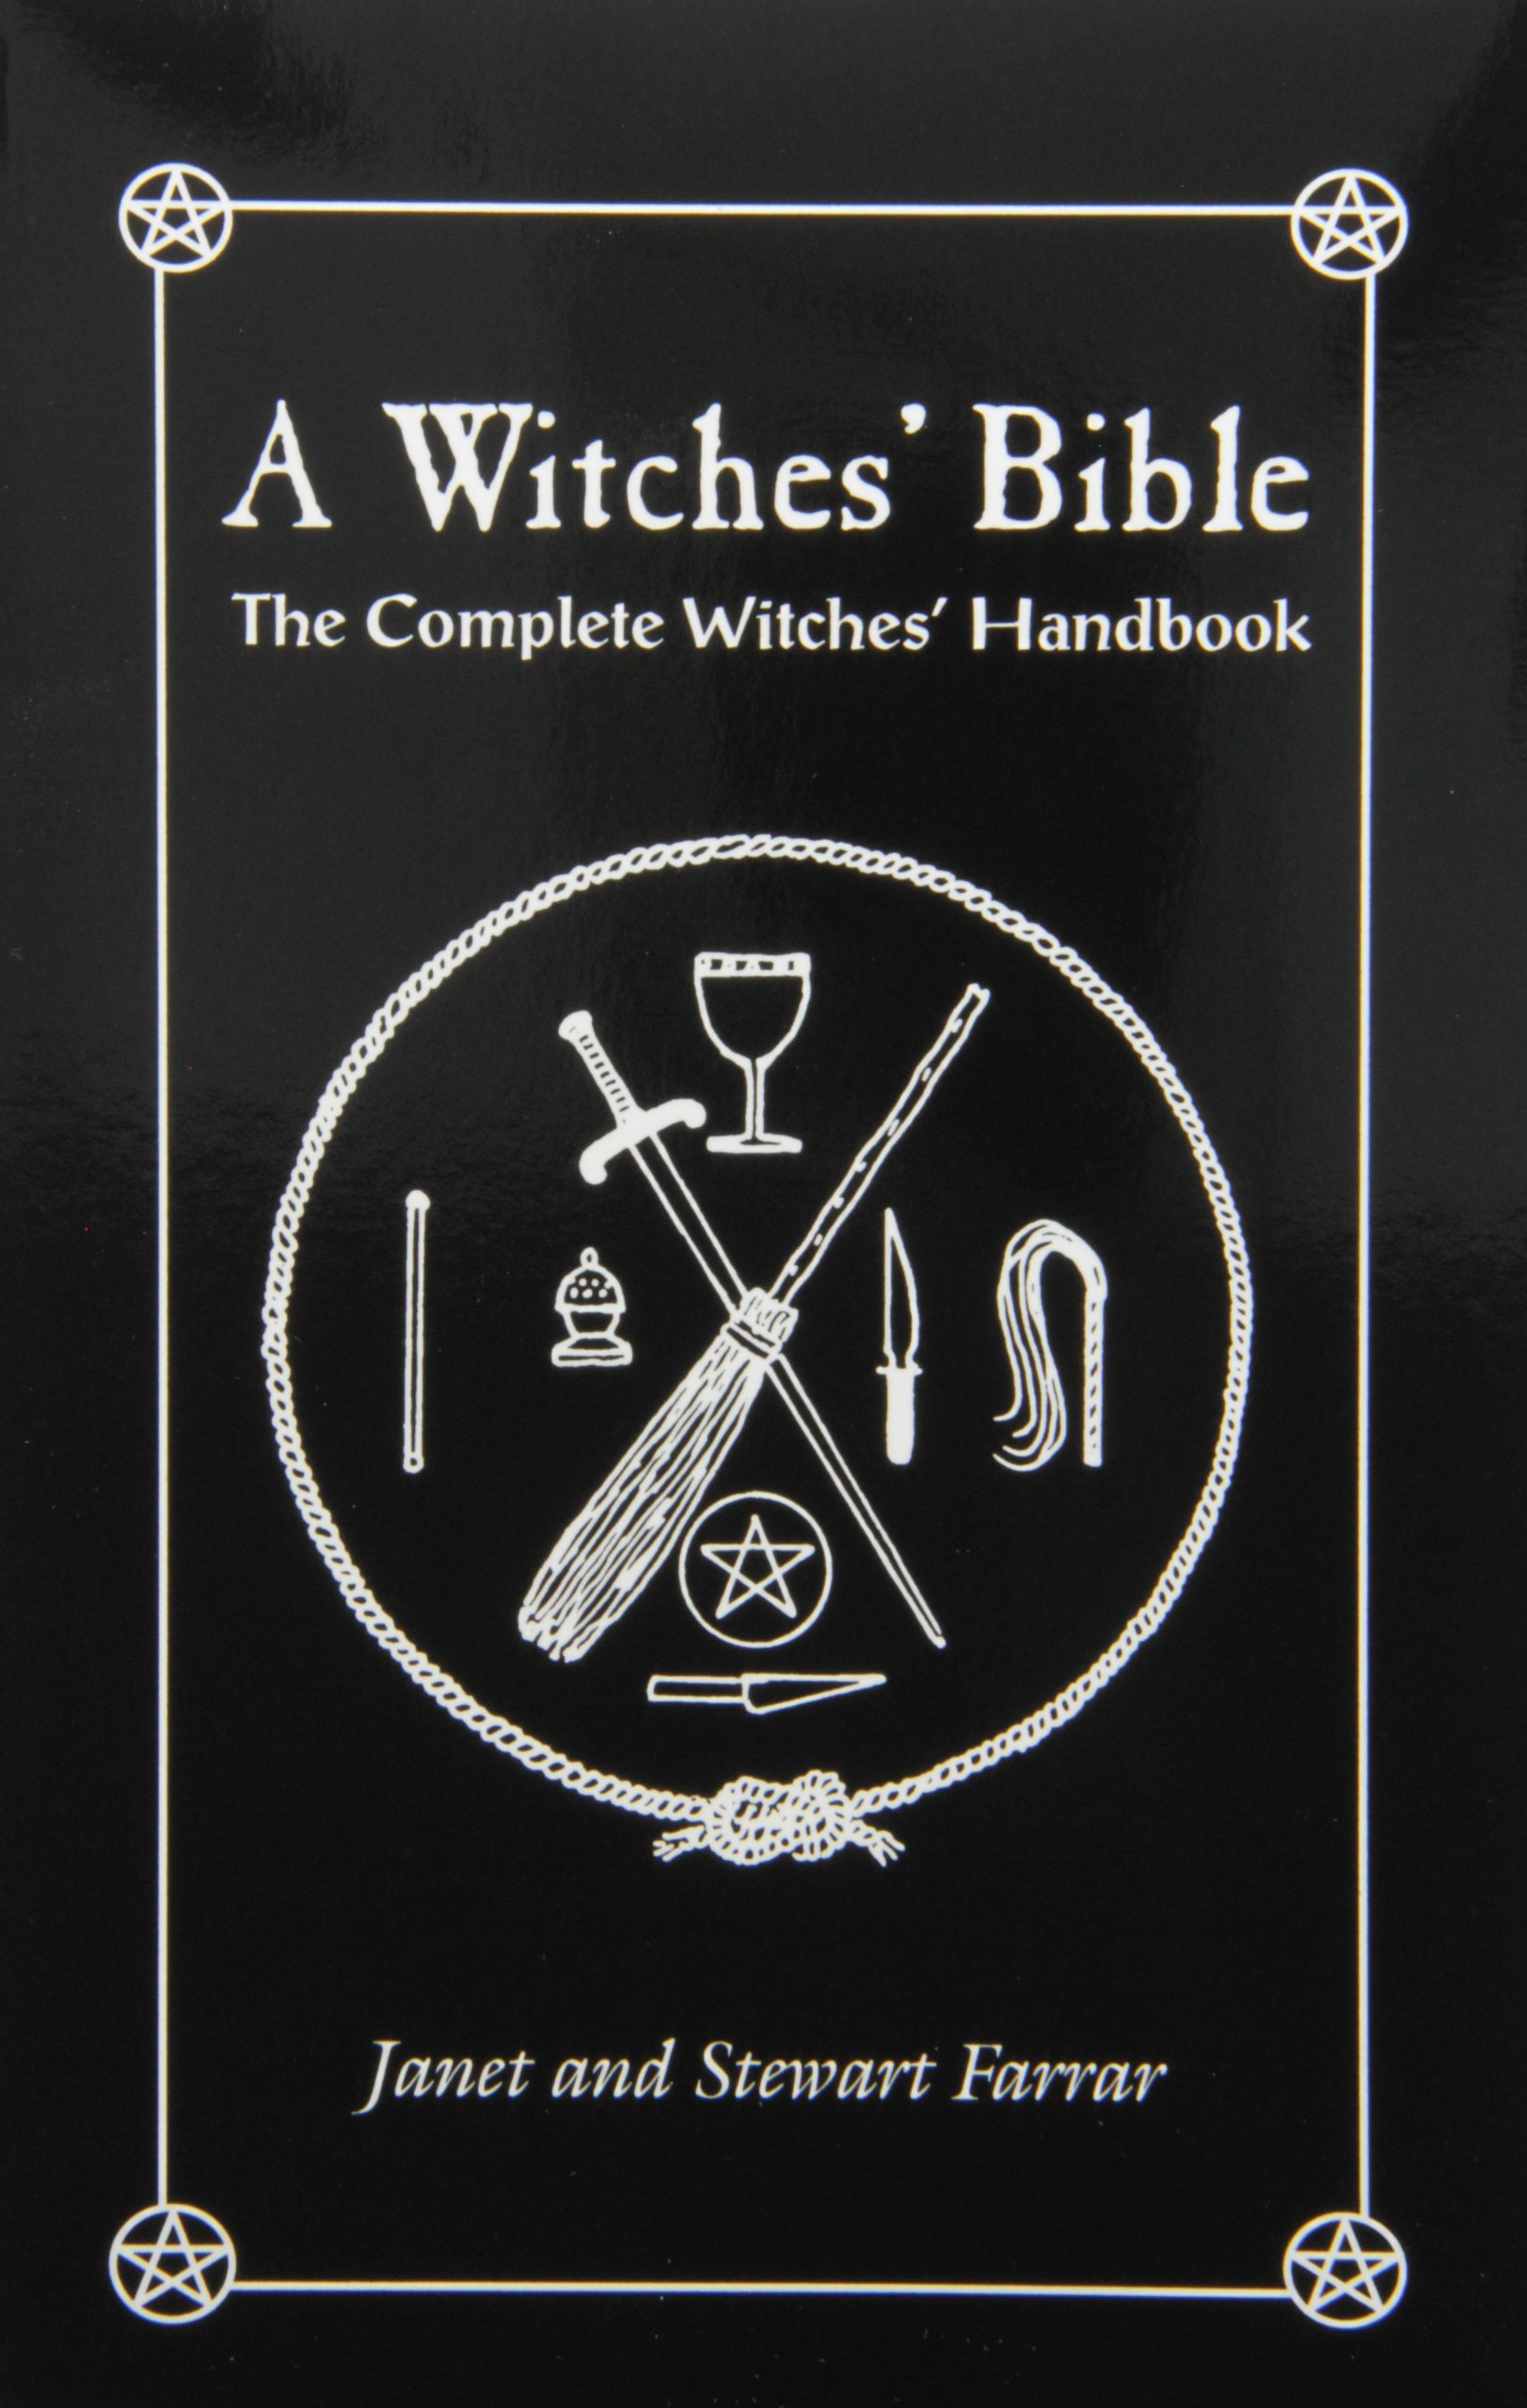 Image OfA Witches' Bible: The Complete Witches' Handbook